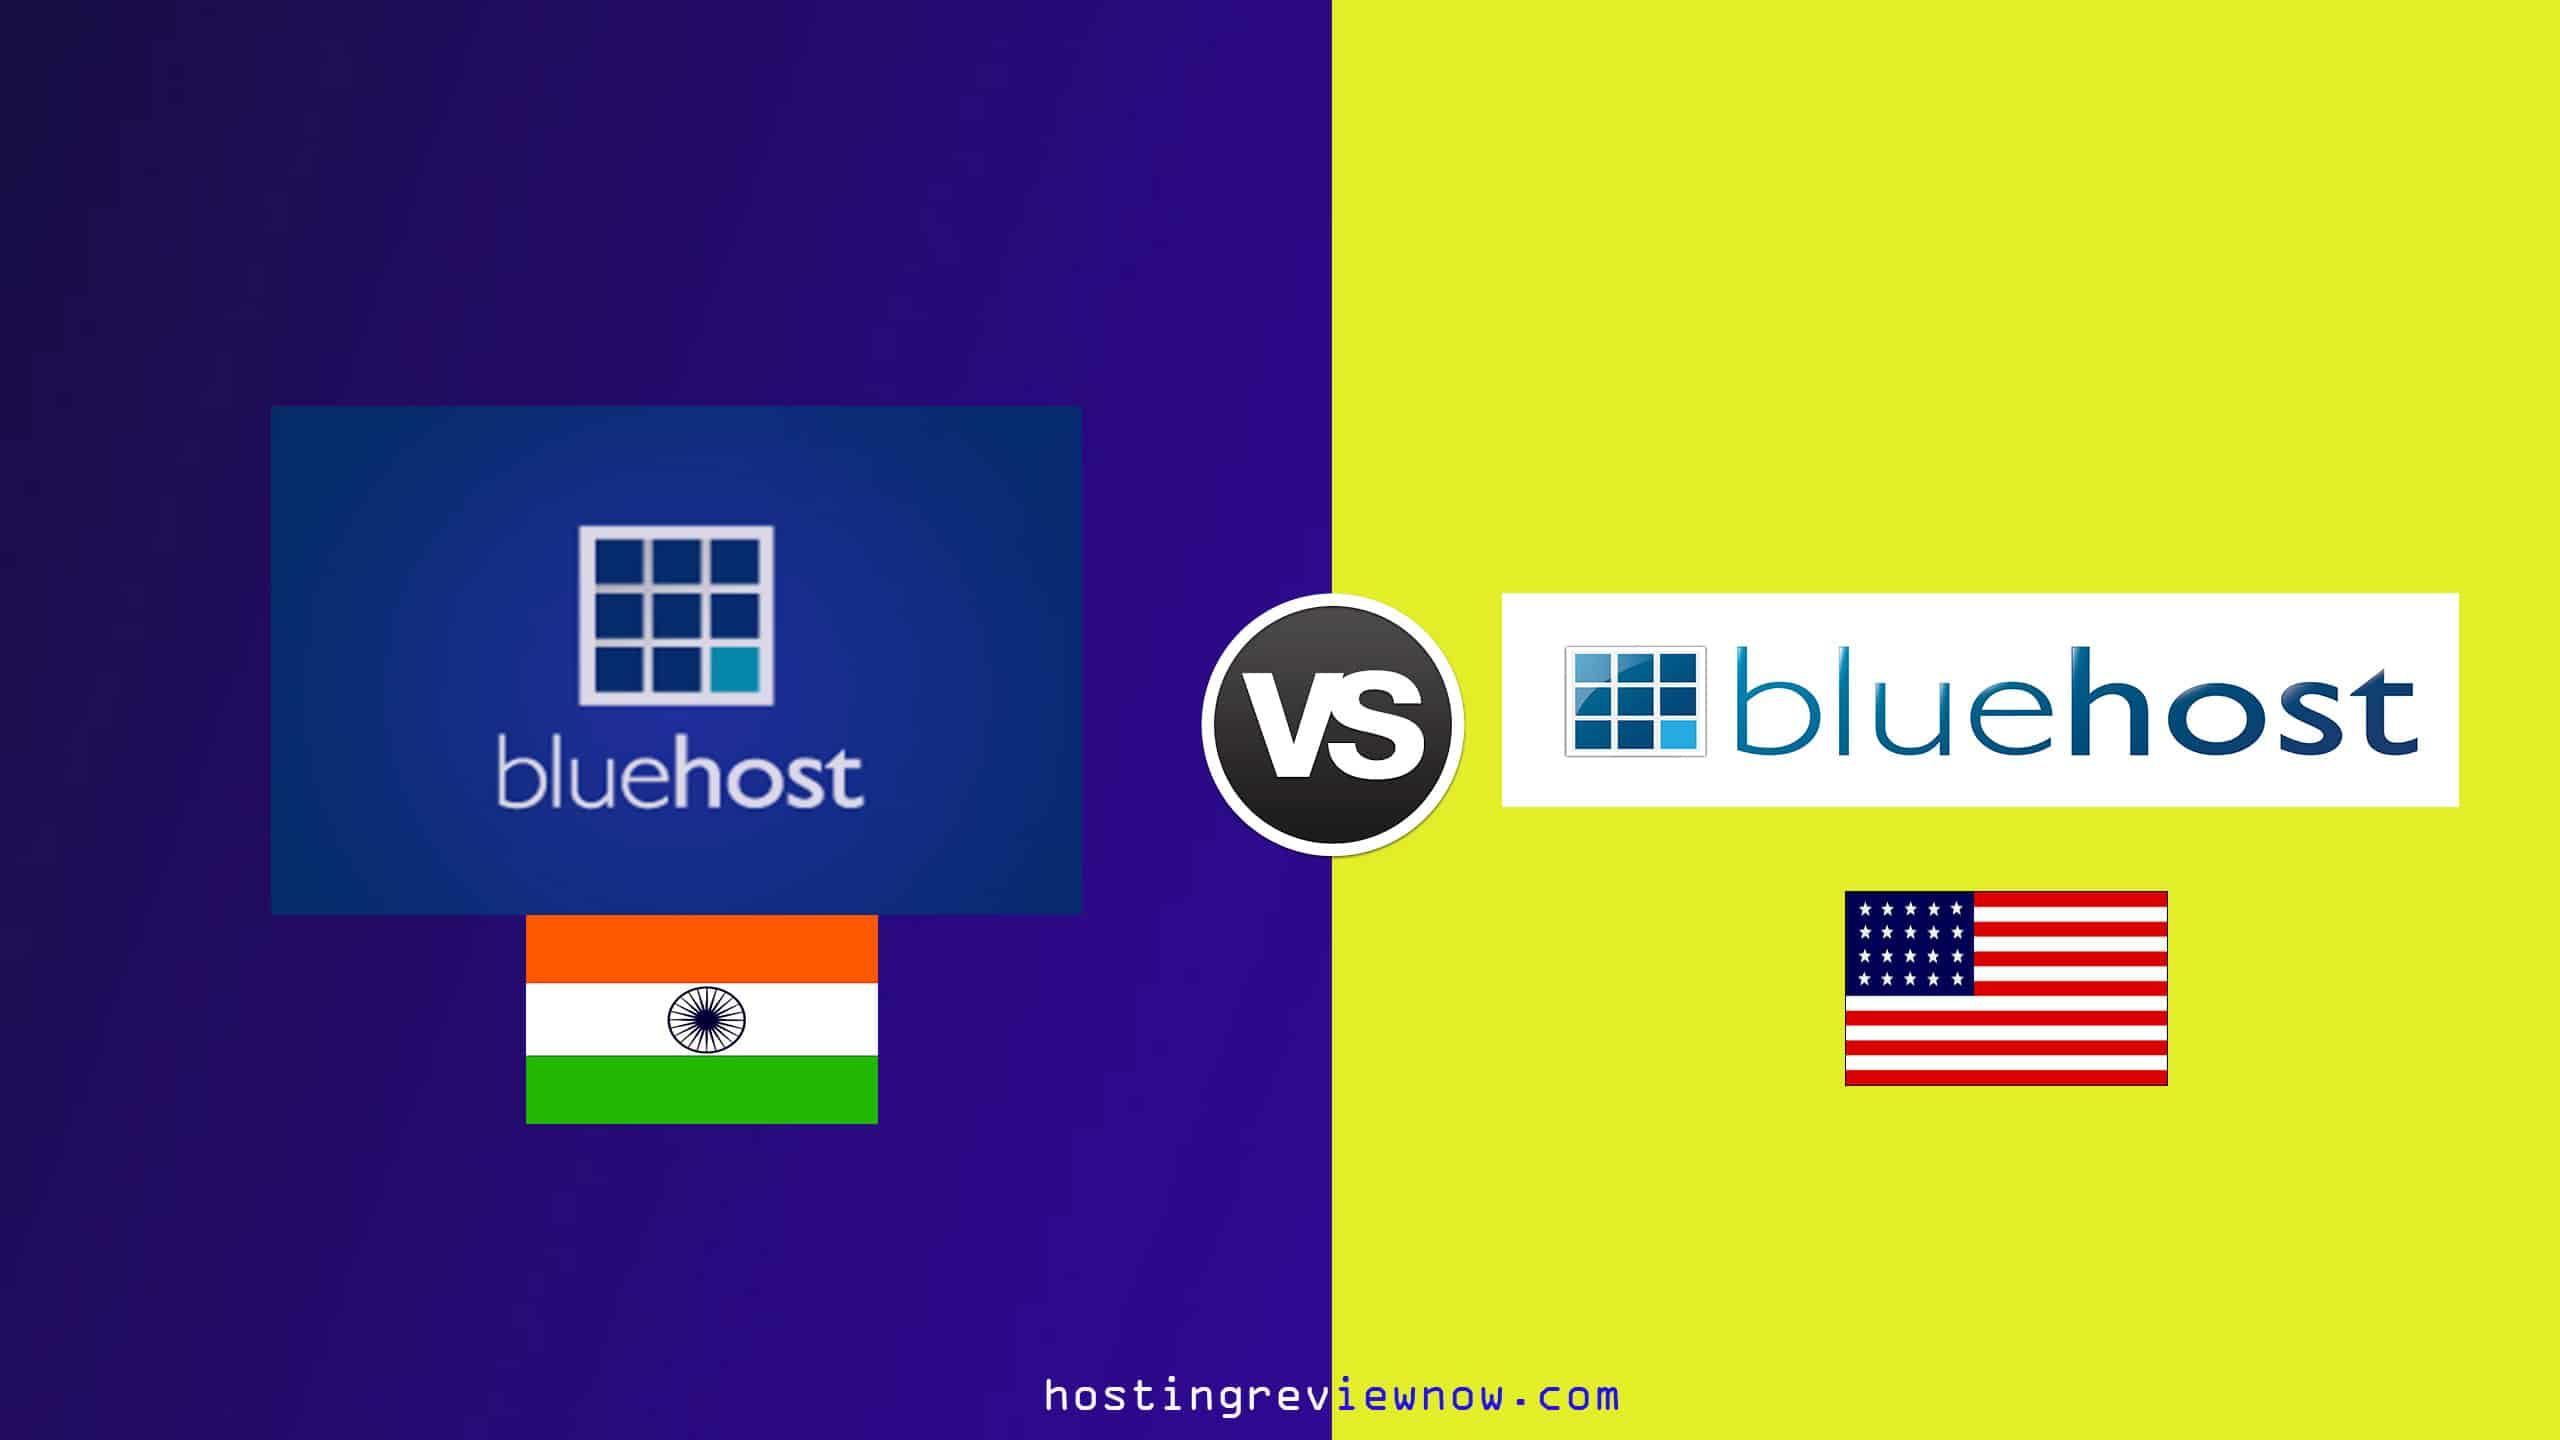 Bluehost india vs bluehost us